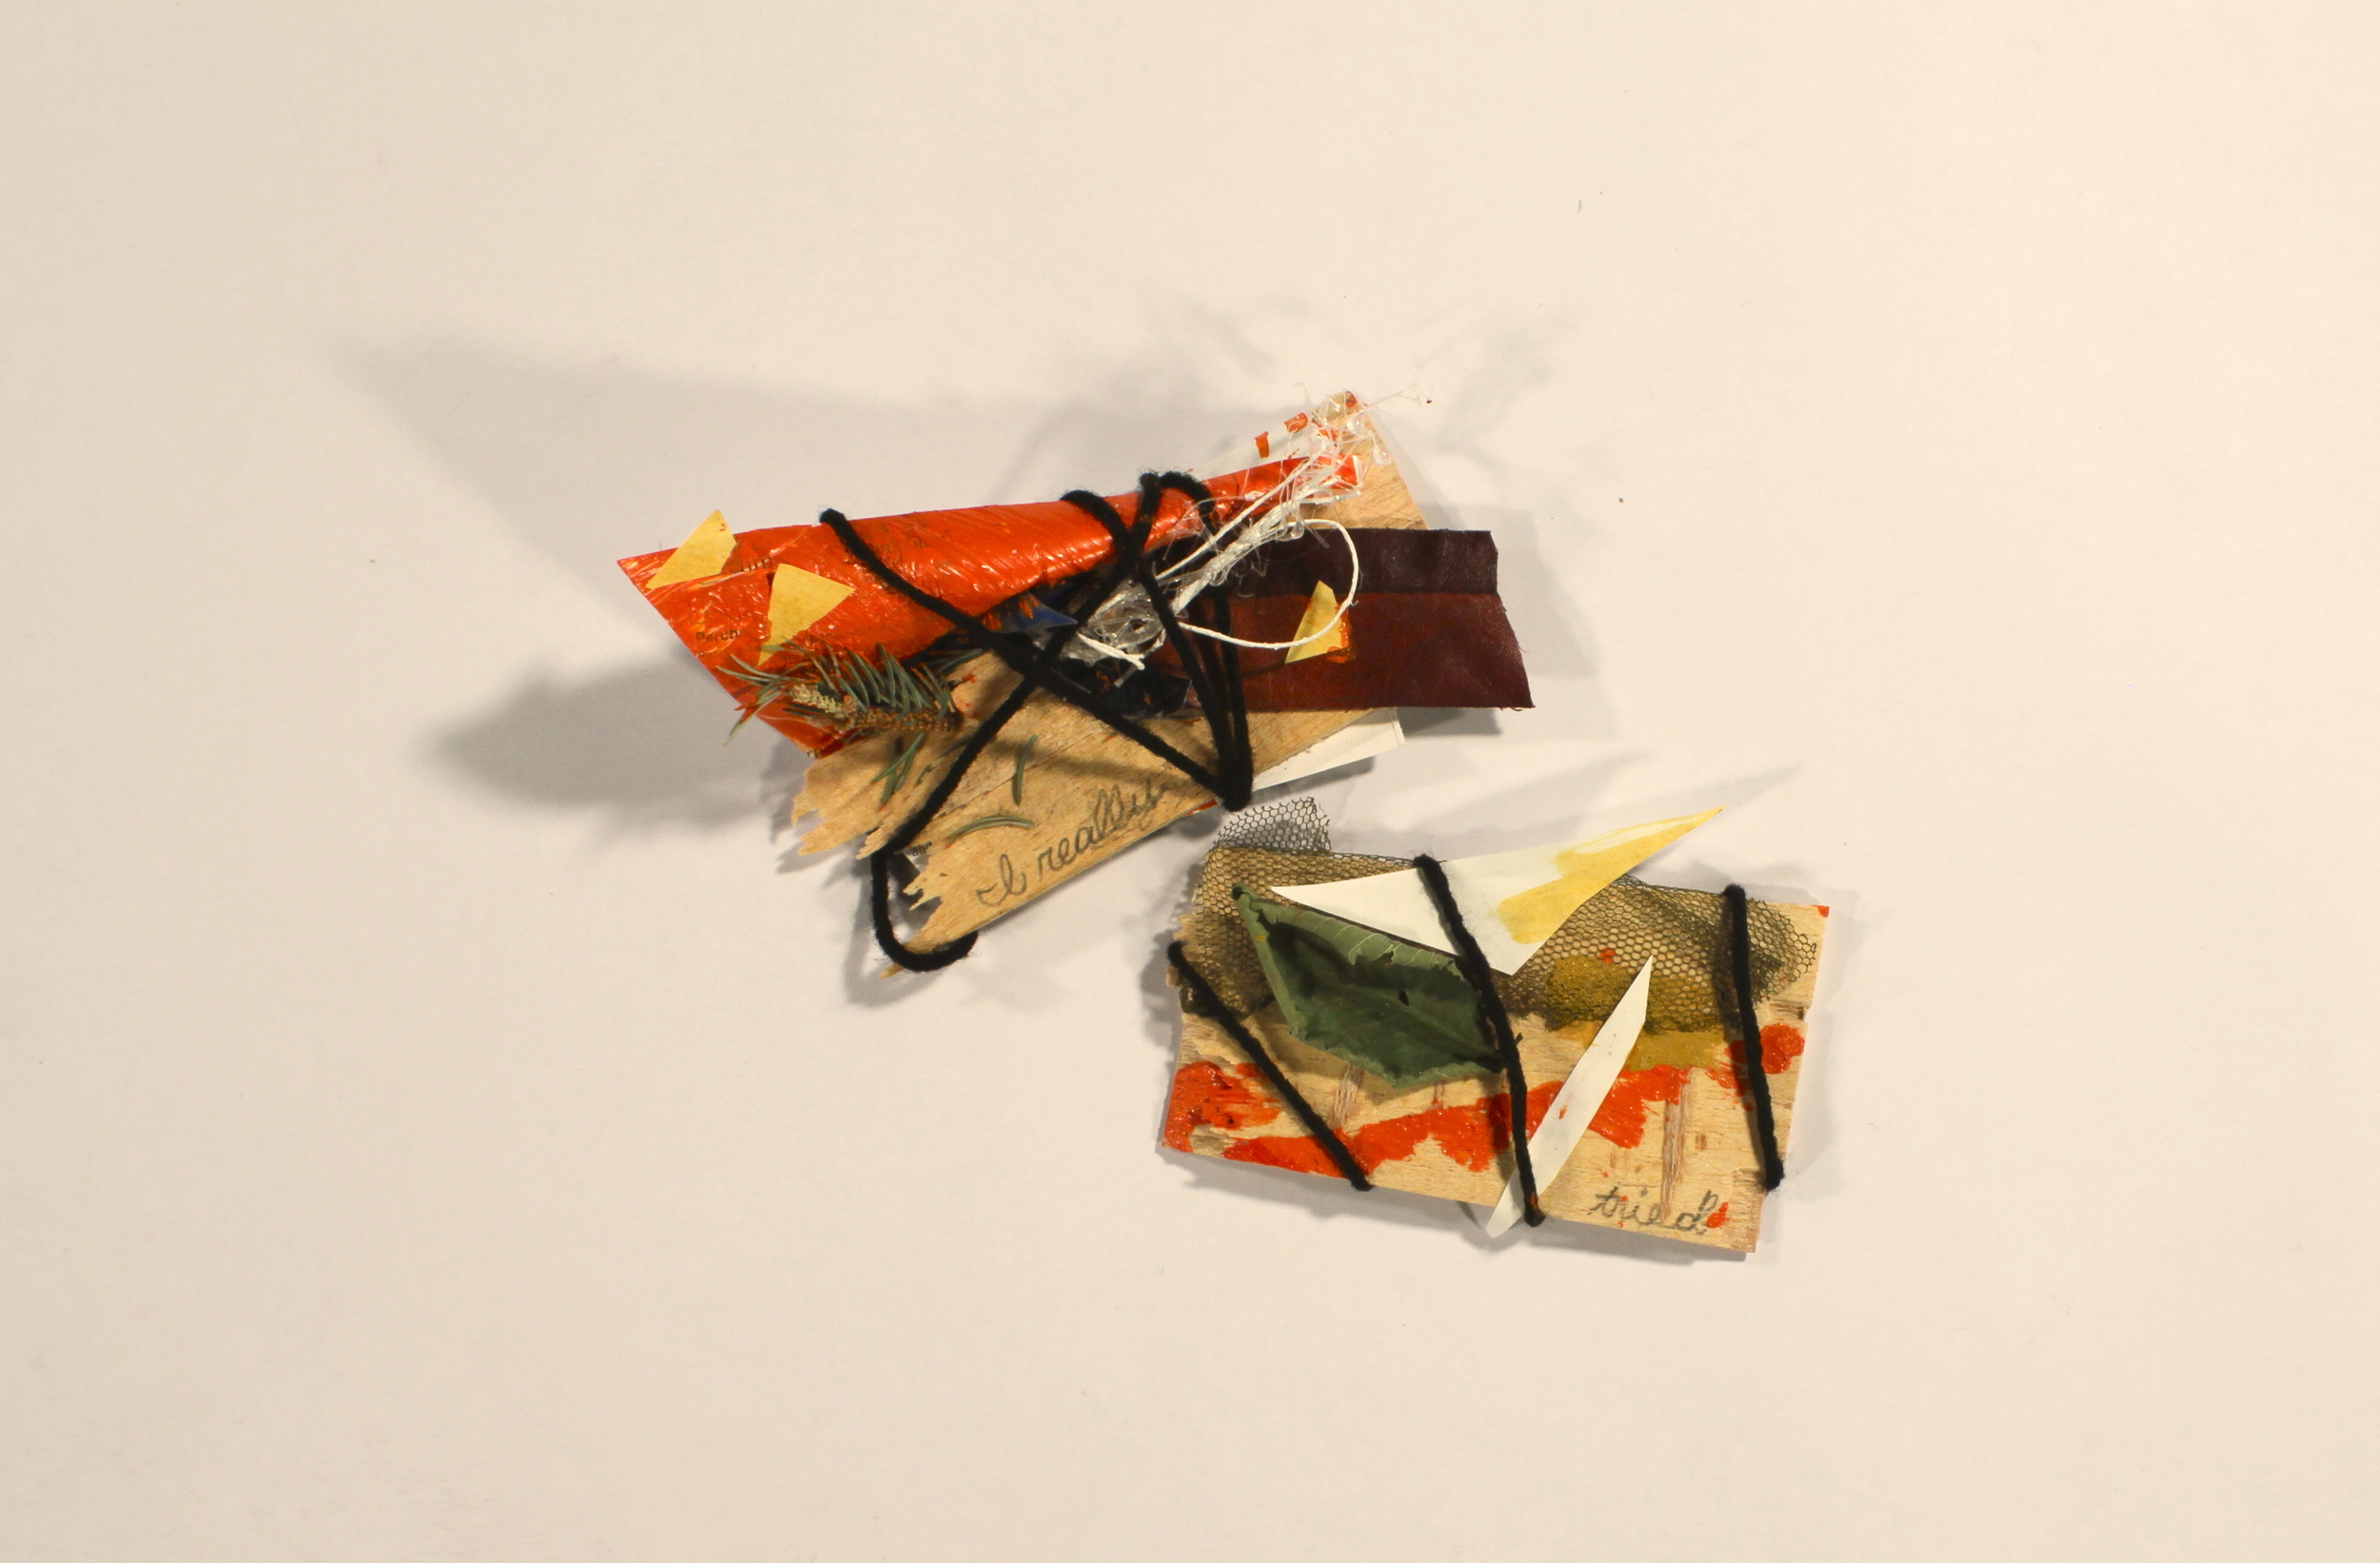 Missunderstandings- Really  2014, wood, leather, paper, acrylic, yarn, leaves, hot glue, 6in x 9in